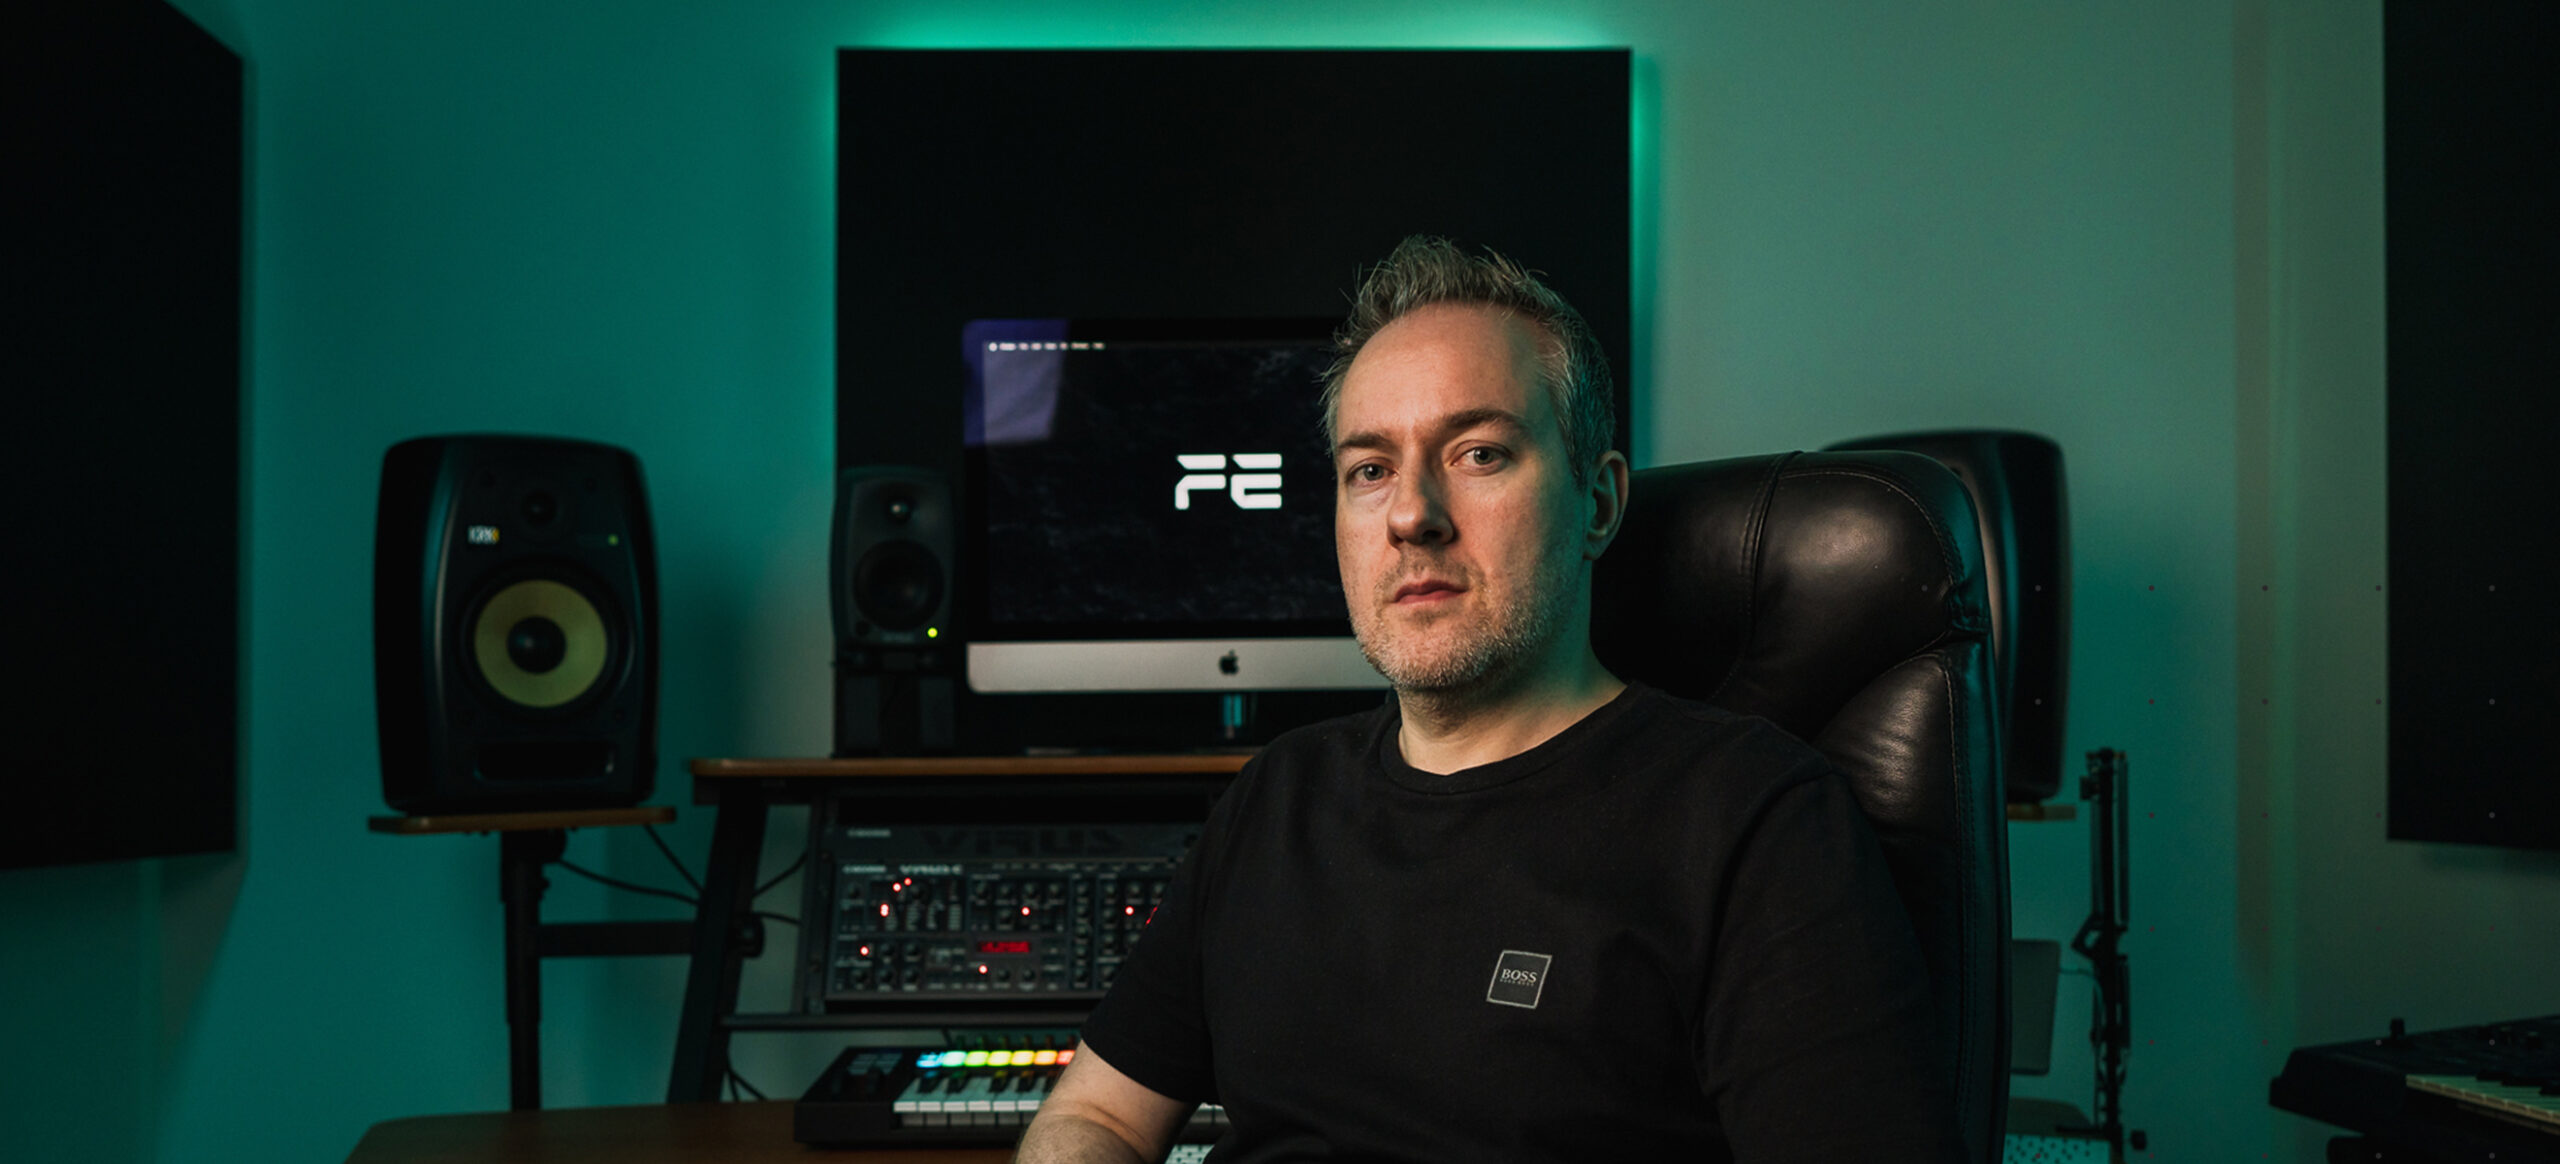 future-engineers-production-sessions-studio-banner-01